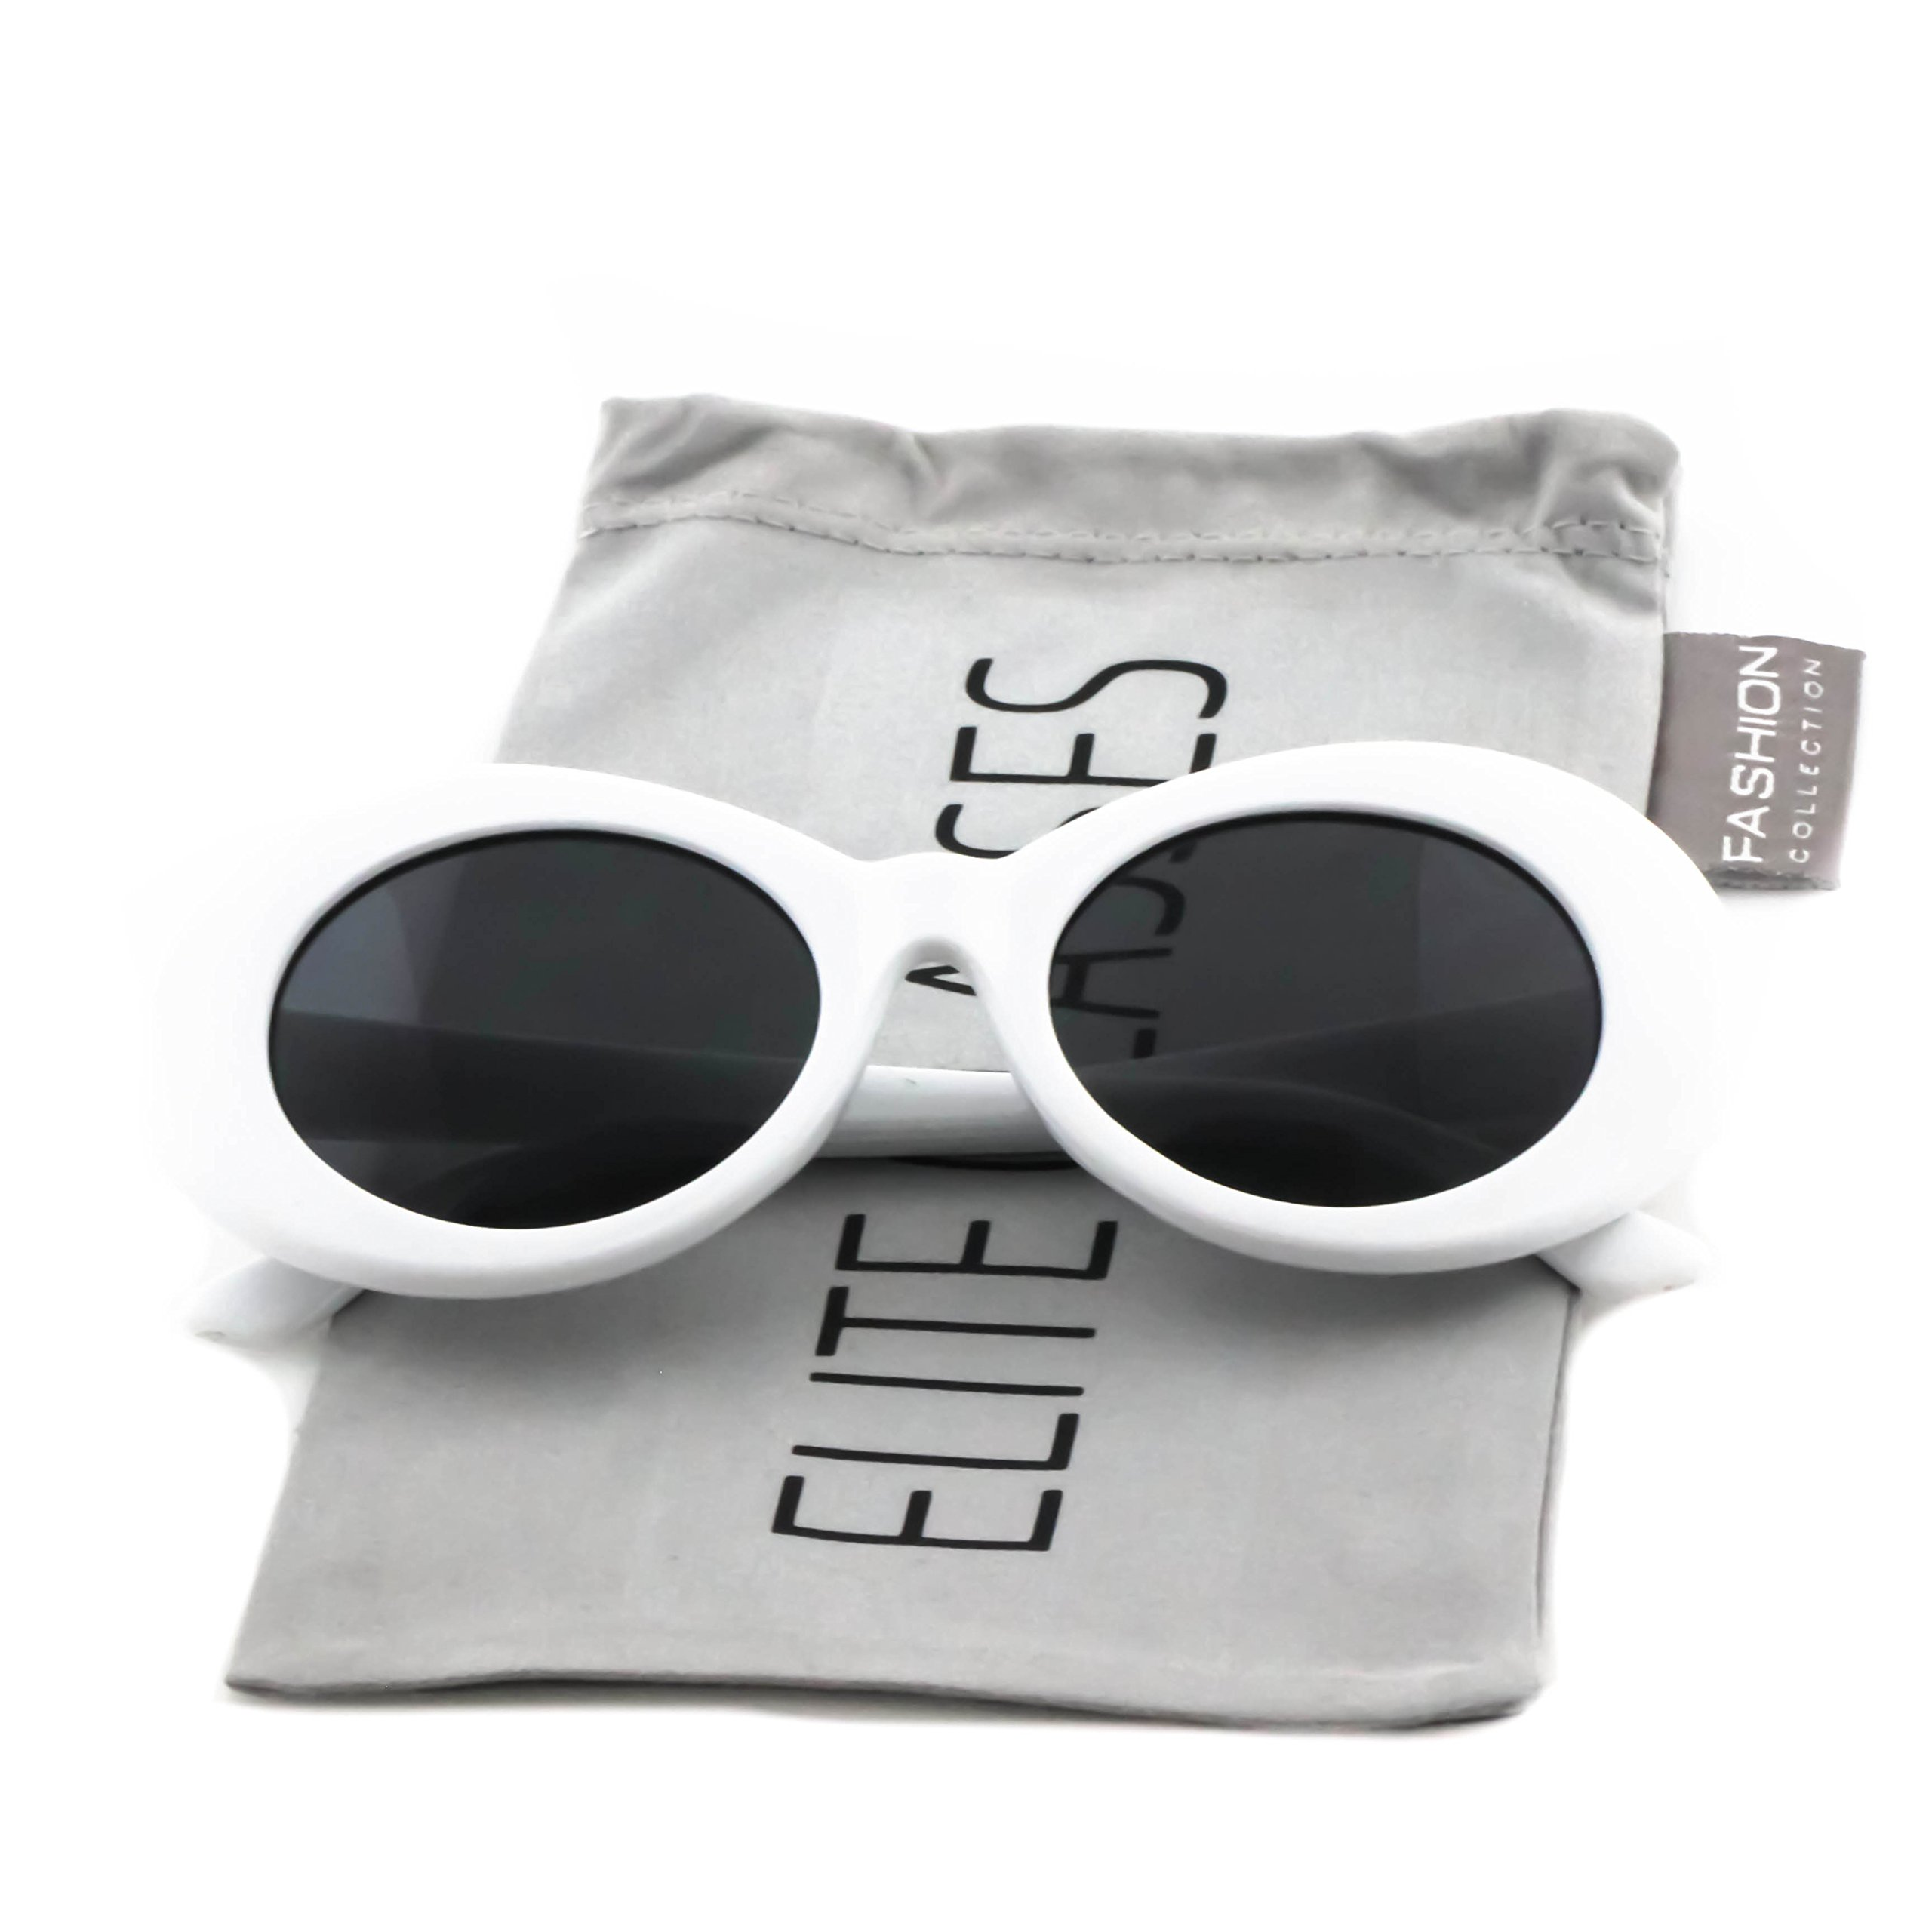 a4f1e0eb8b1 Details about Clout Goggles Oval Hypebeast Eyewear Supreme Glasses Cool  Sunglasses